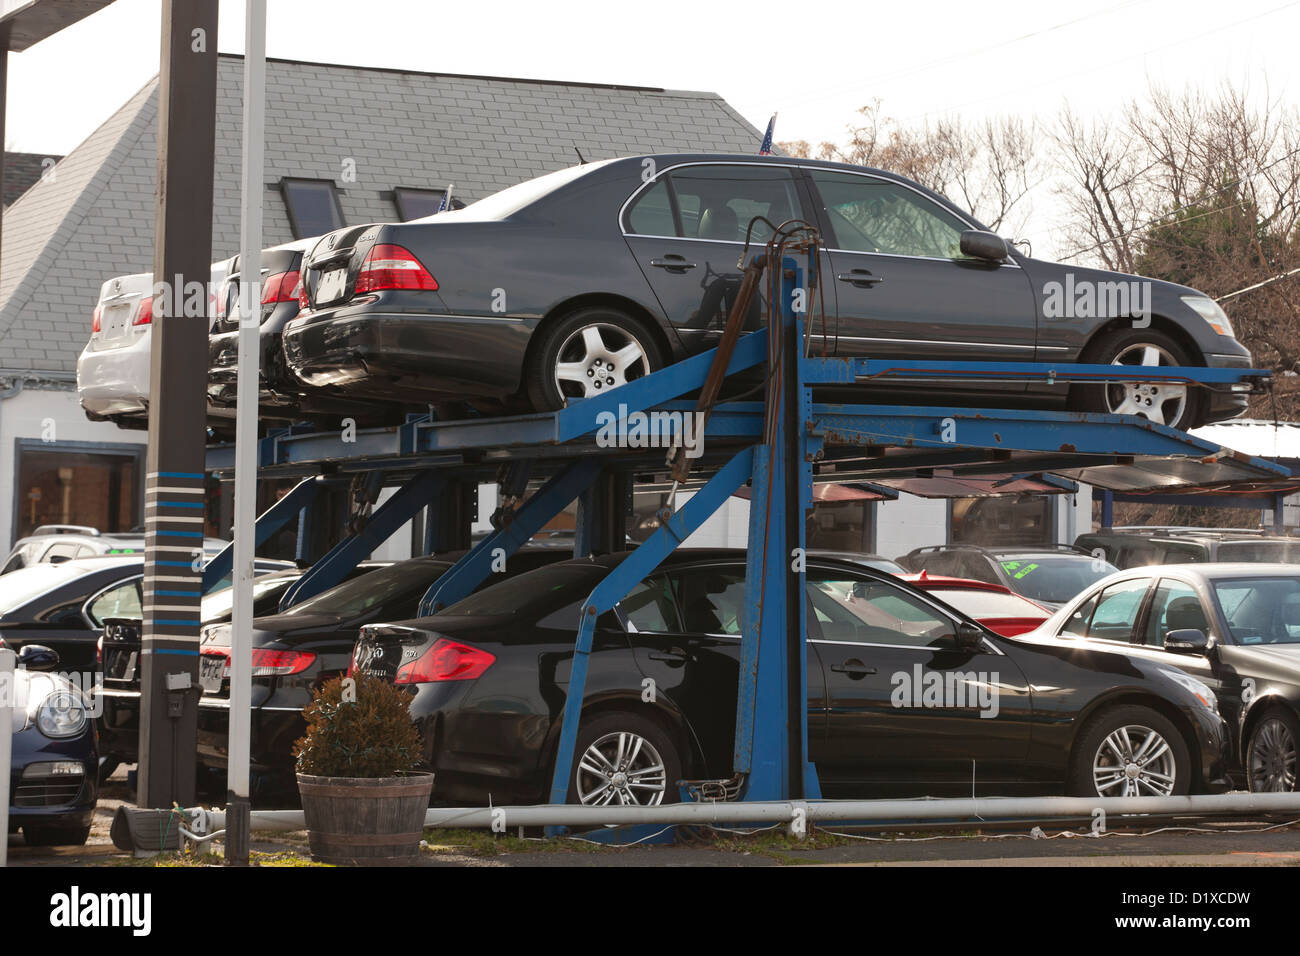 Cars on parking lift - Stock Image